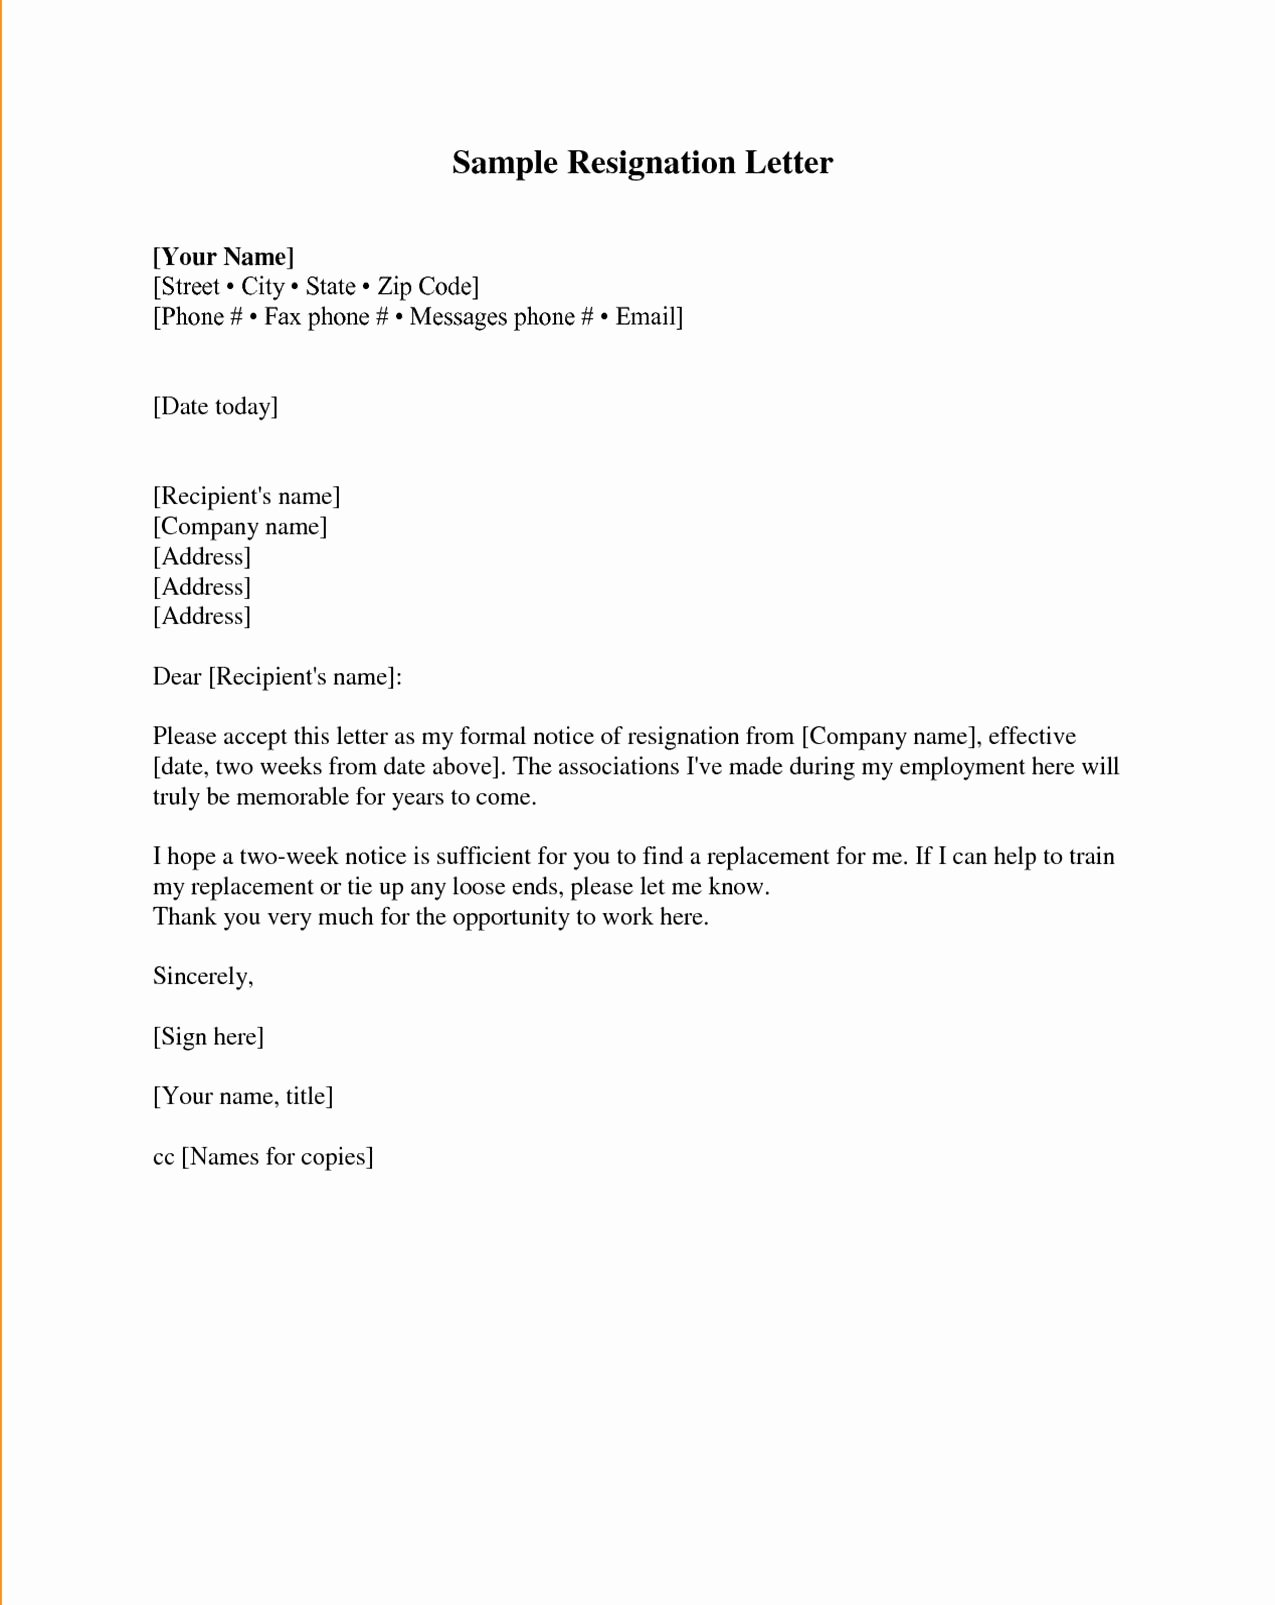 Formal Resignation Letters Sample Awesome Resignation Letter Samples Download Pdf Doc format